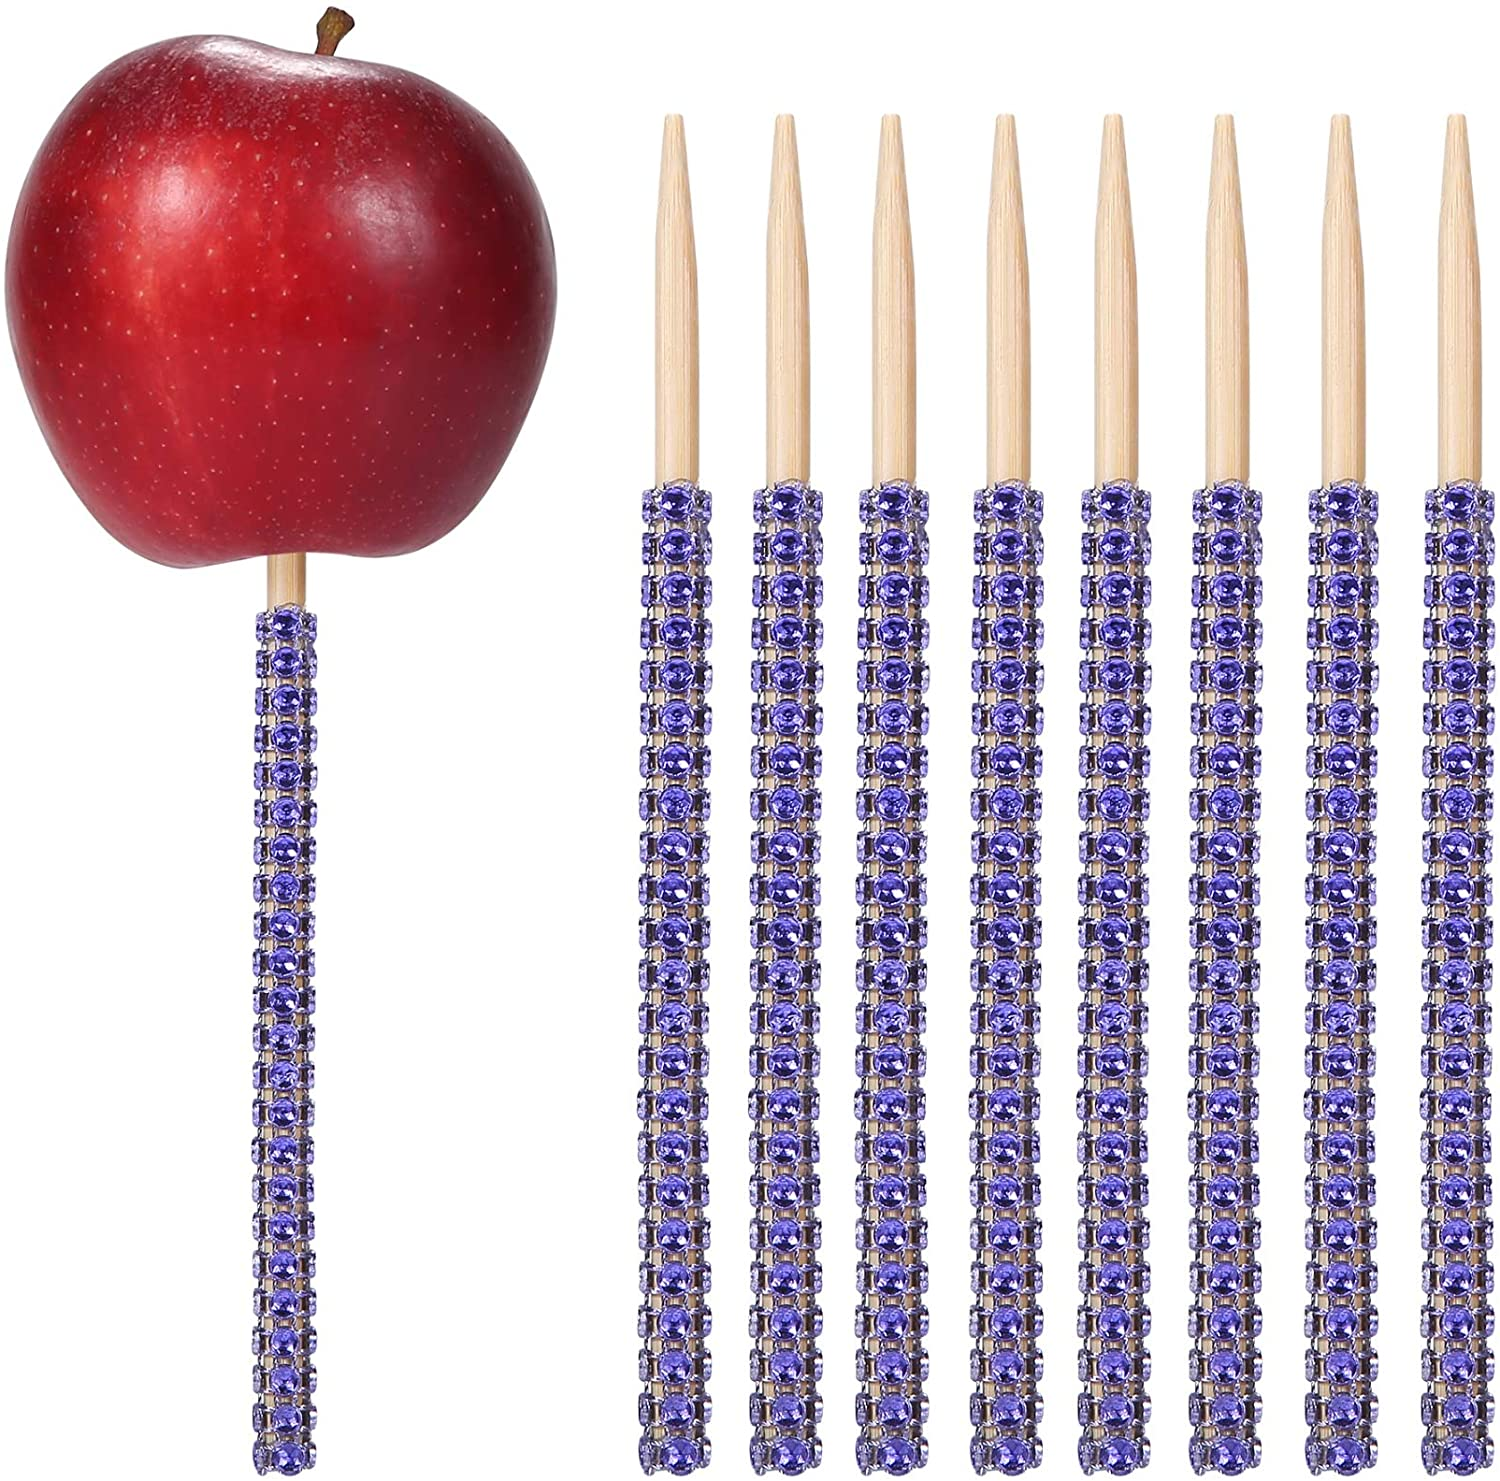 24ct Rhinestone Bling Bamboo Candy Apple Sticks 6 inch for Cake pop Chocolate Caramel Apple Skewers Buffet Party Favor Candy Making Accessories by Quotidian (Royal Blue)